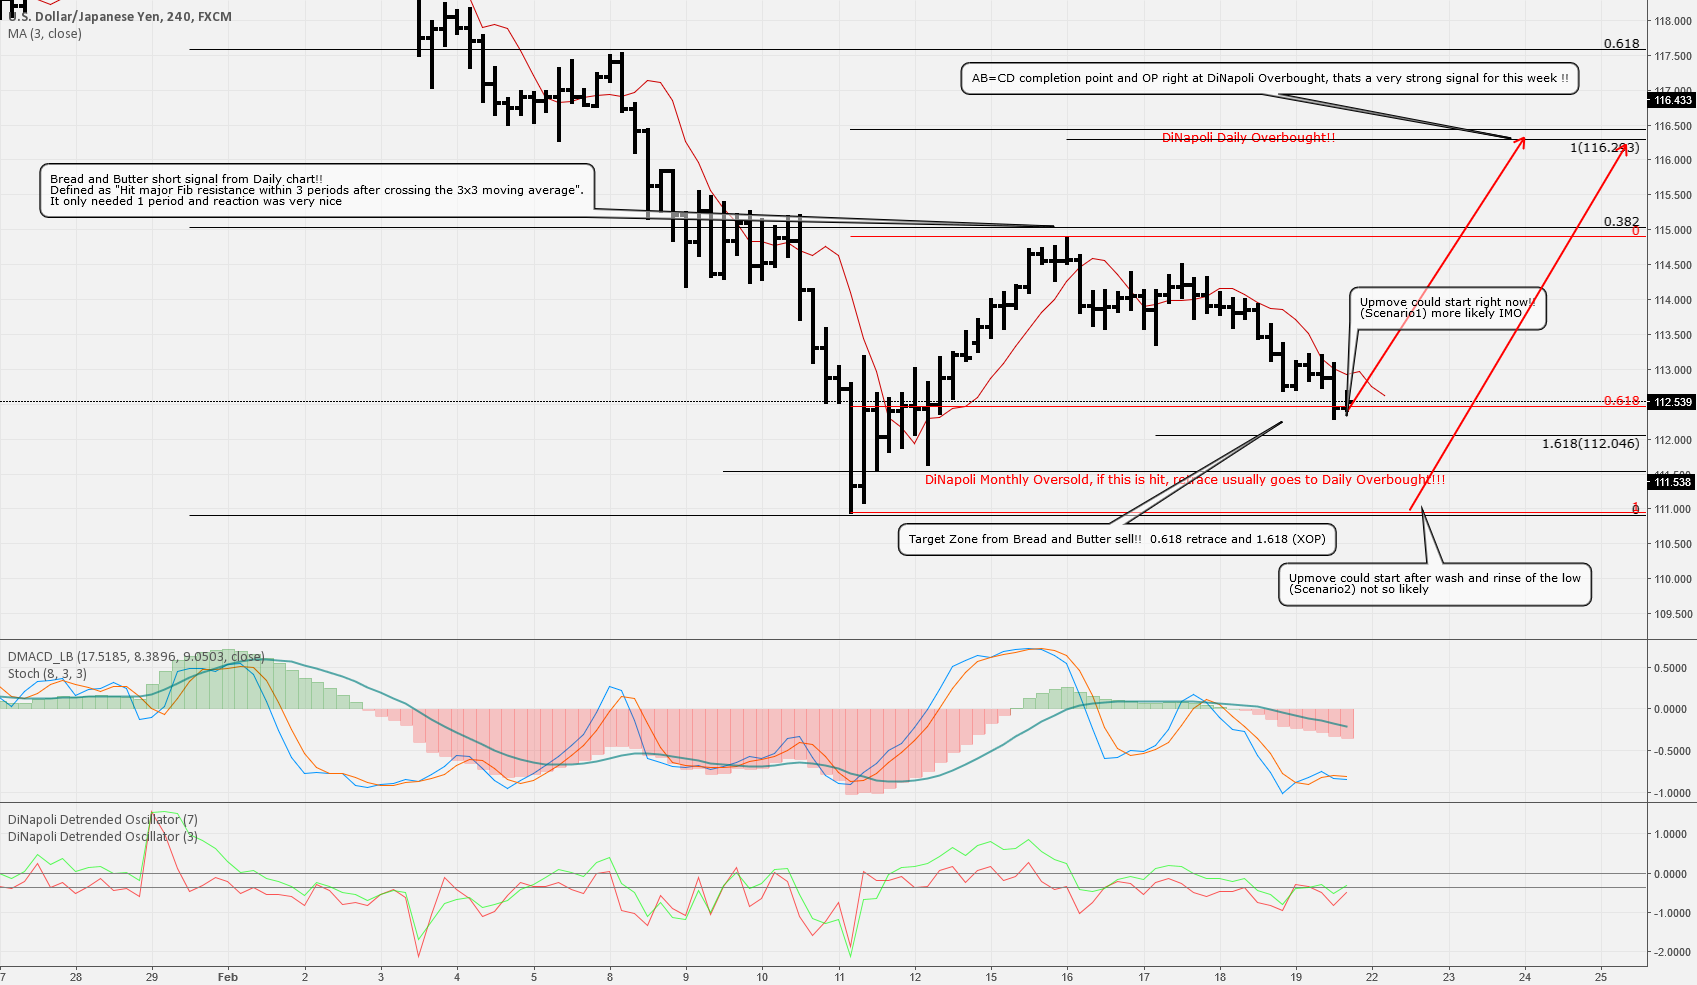 DiNapoli Analysis on USDJPY this week, 2 Scenarios, min 400Pips